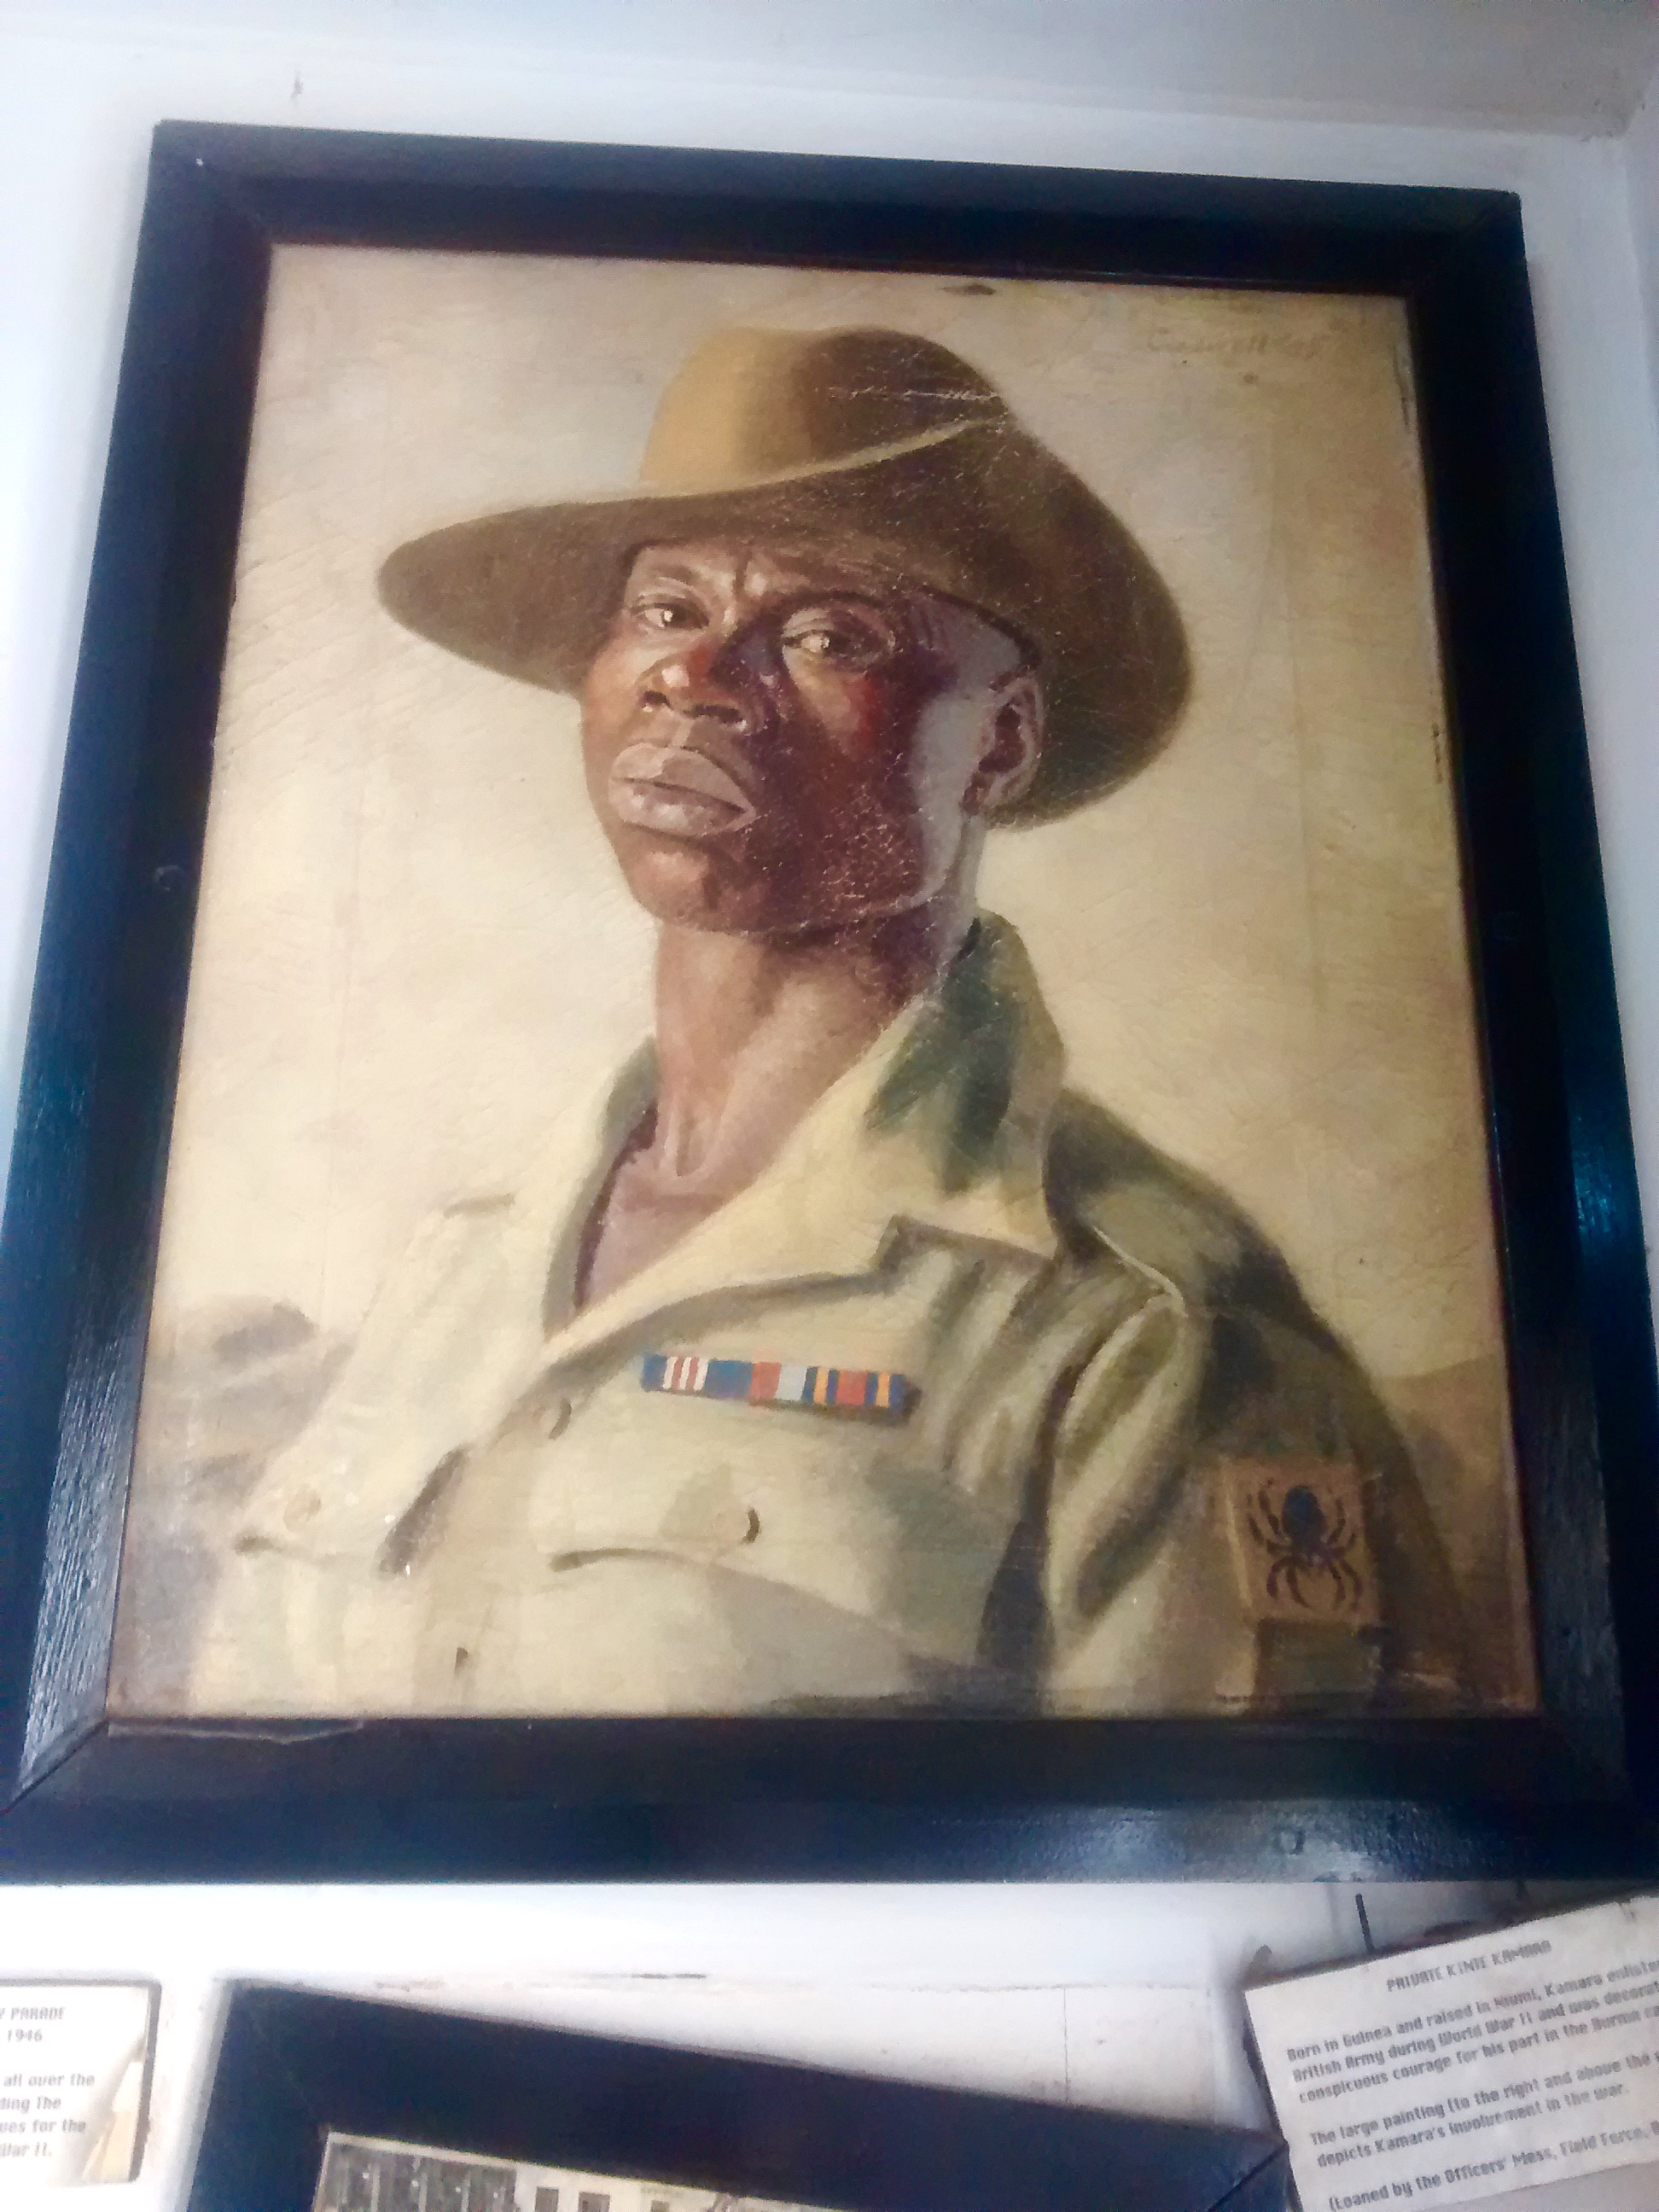 I love this proud photograph of Private Kinte Kamara who served in the British Army in WW2.